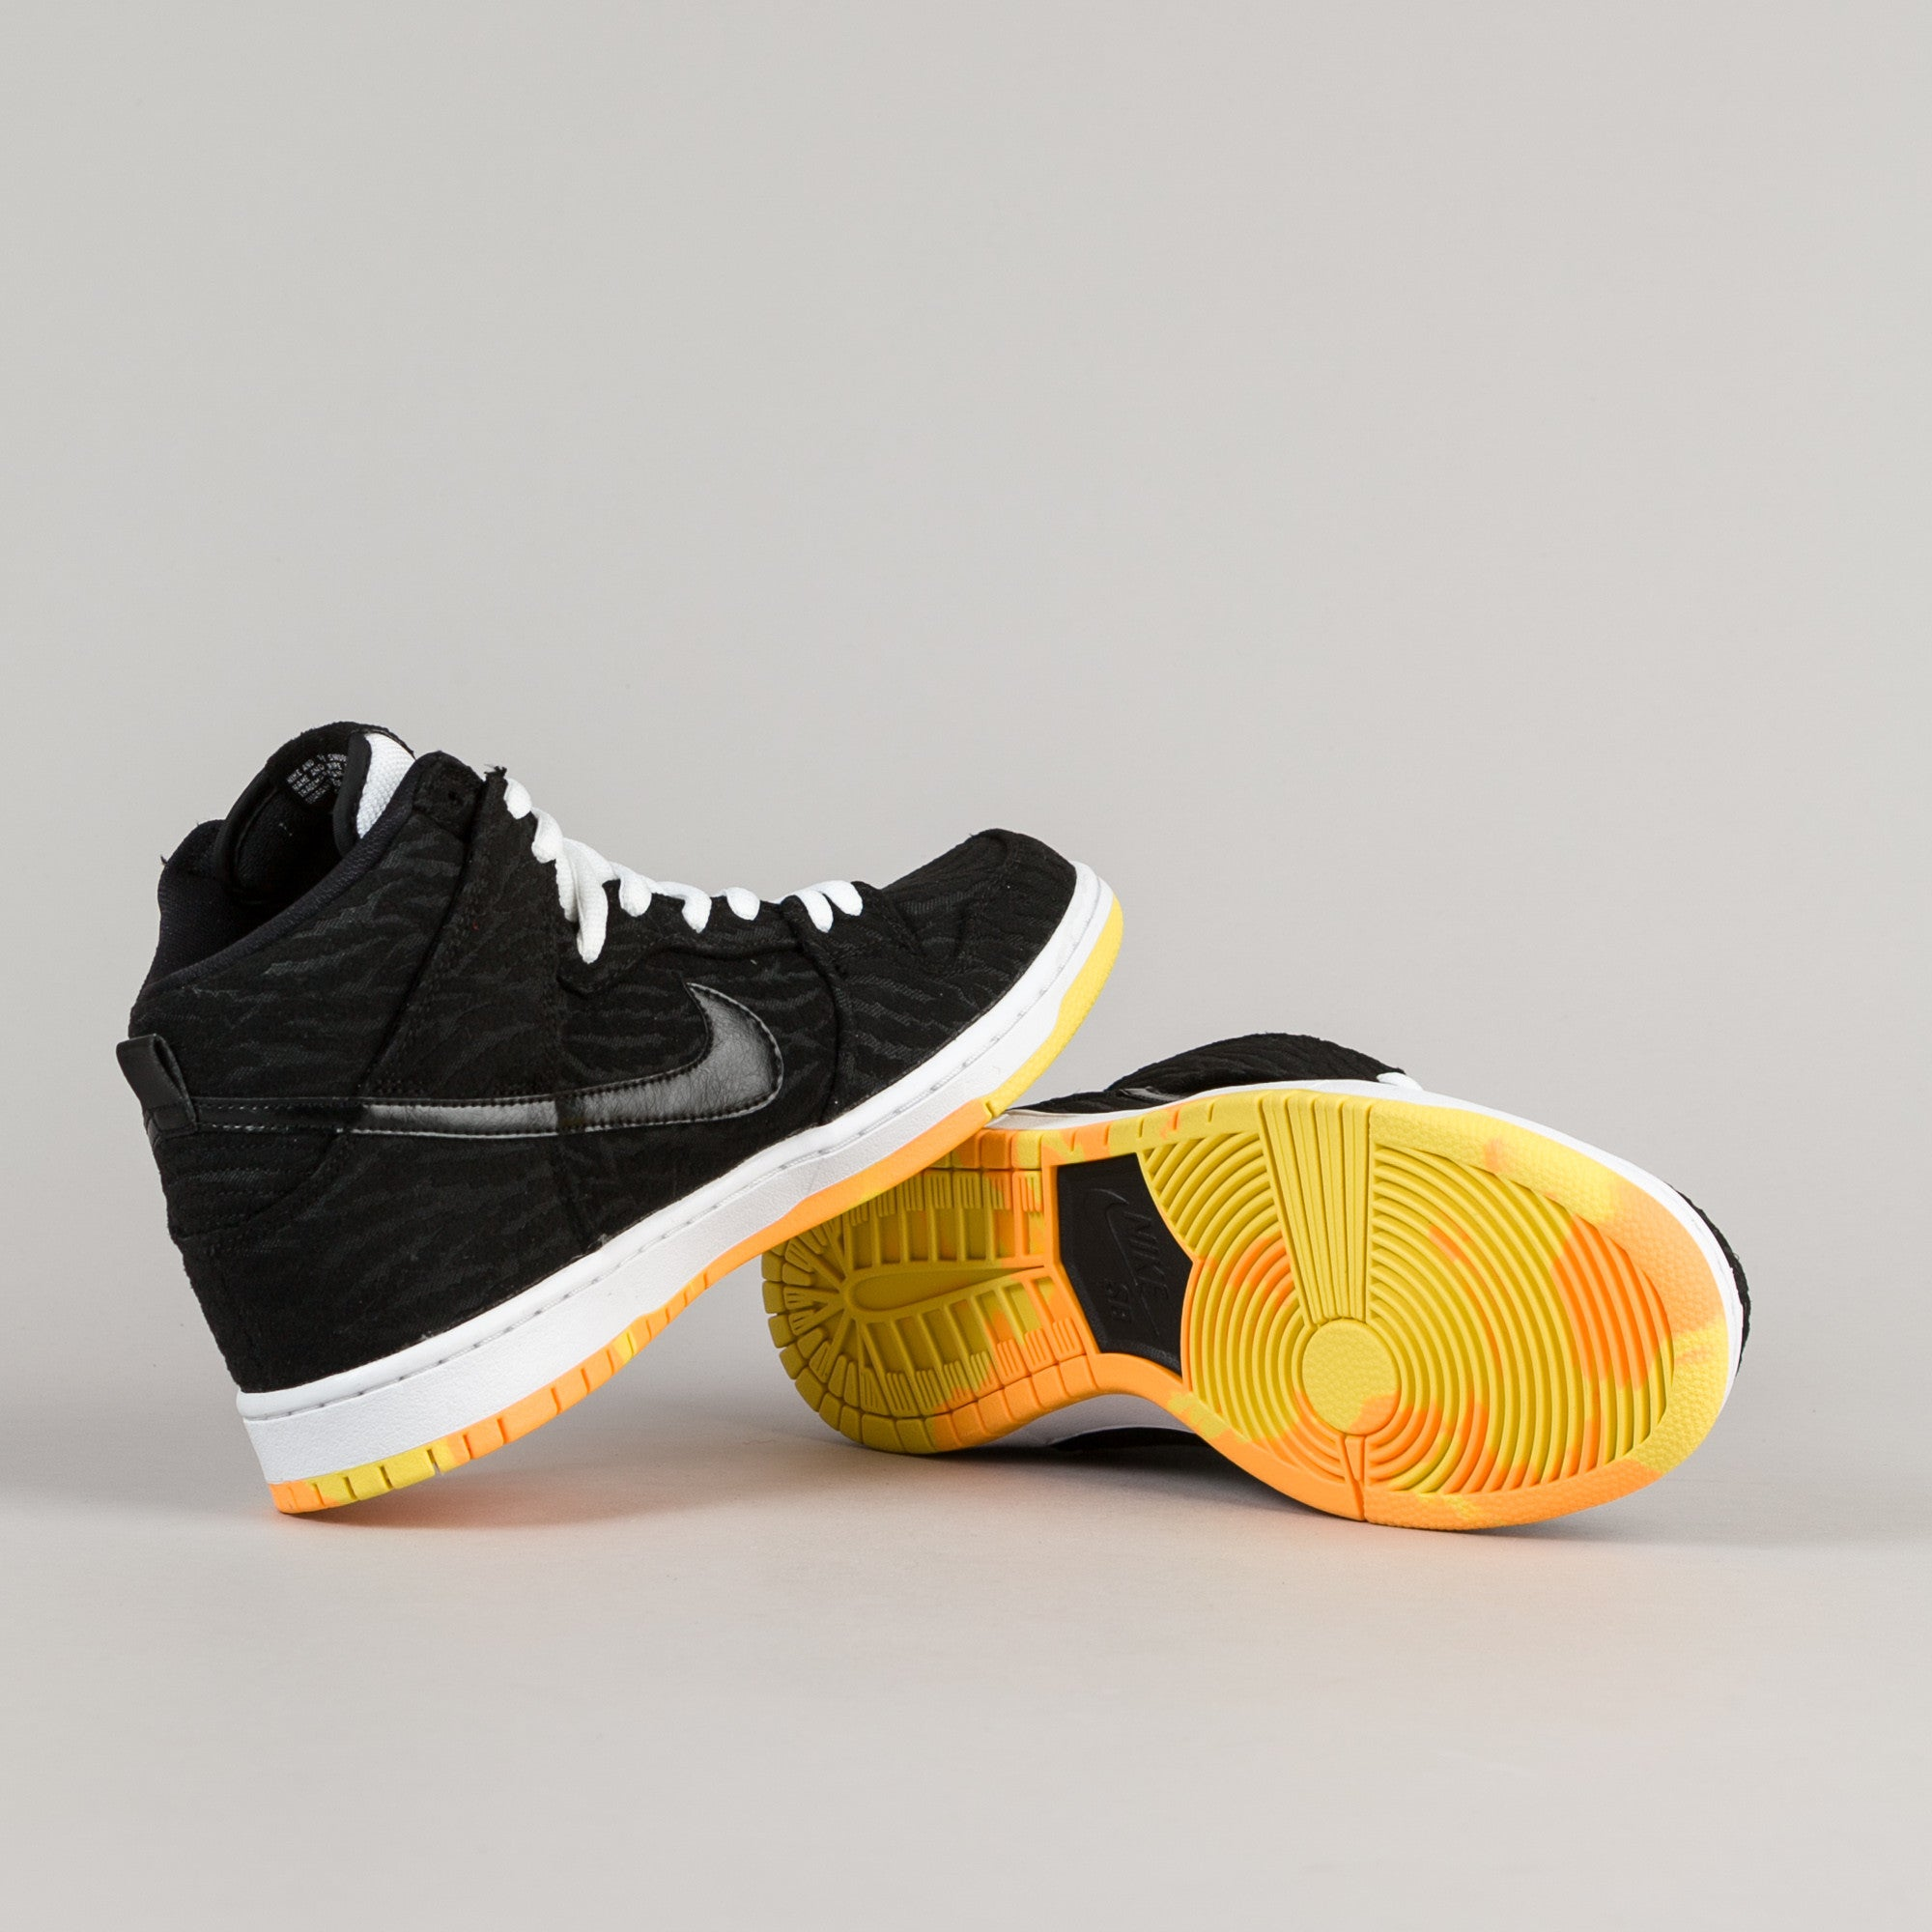 Nike SB Dunk High Pro Shoes - Black / Black - White - Laser Orange